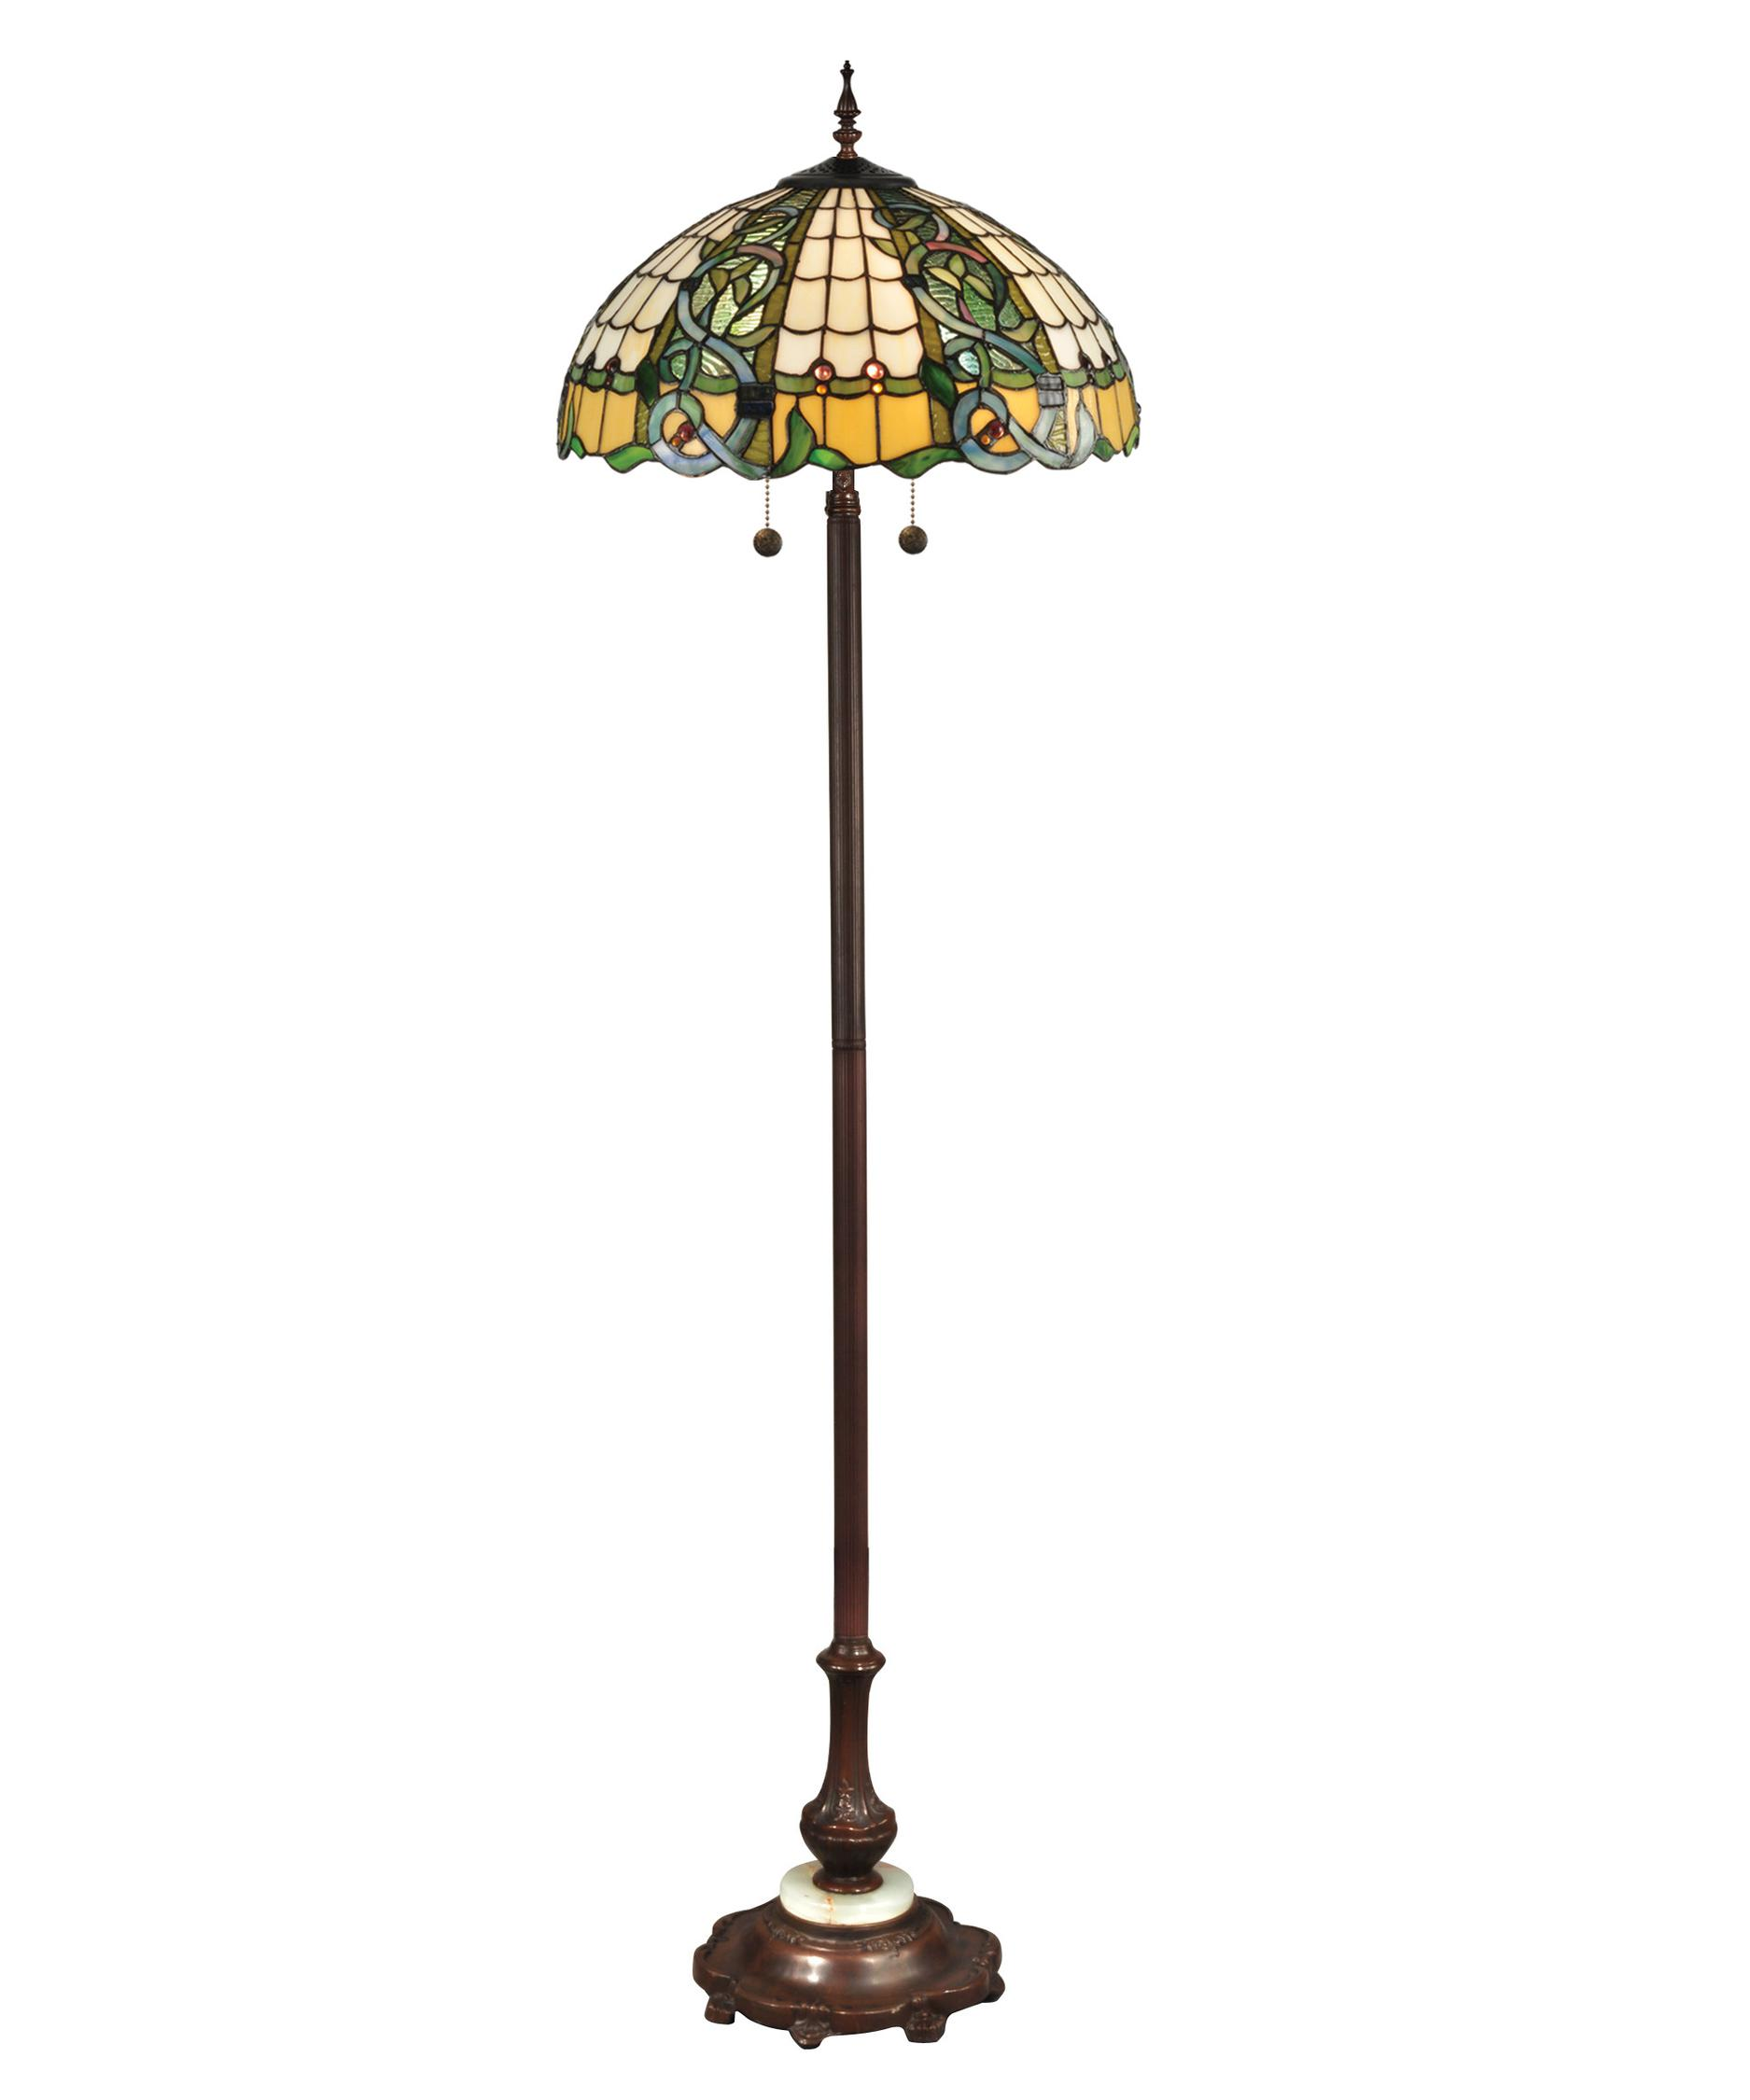 Dale Tiffany Floor Lamps Replacement Parts